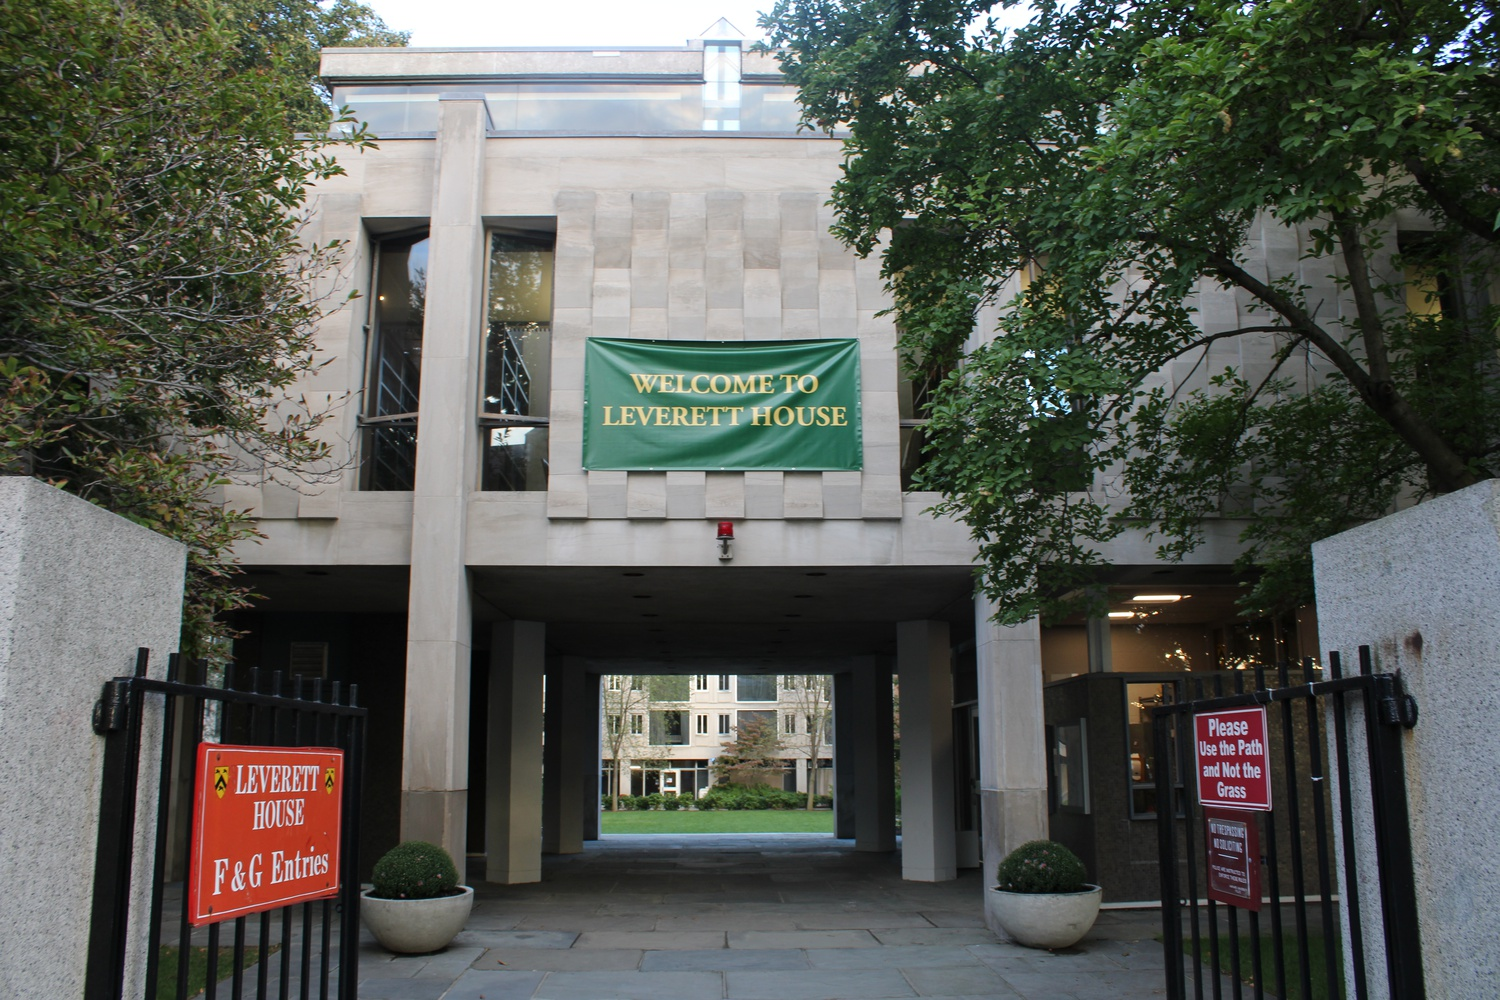 Leverett House is one of Harvard's twelve undergraduate houses.